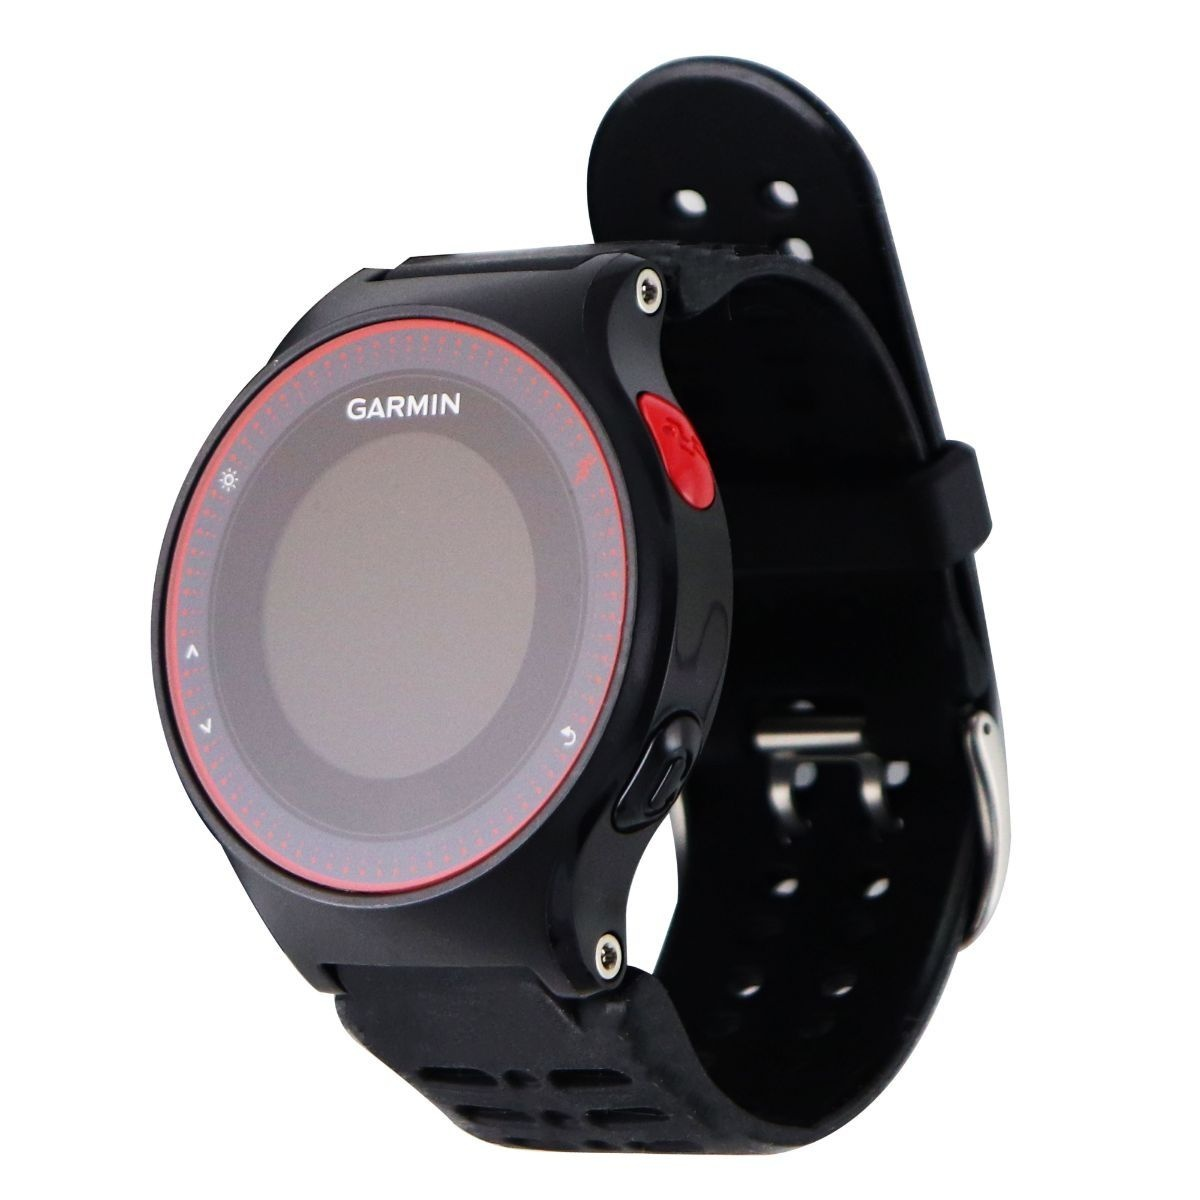 Garmin Forerunner 225 GPS Running Watch with Wrist-based Heart Rate - Black/Red